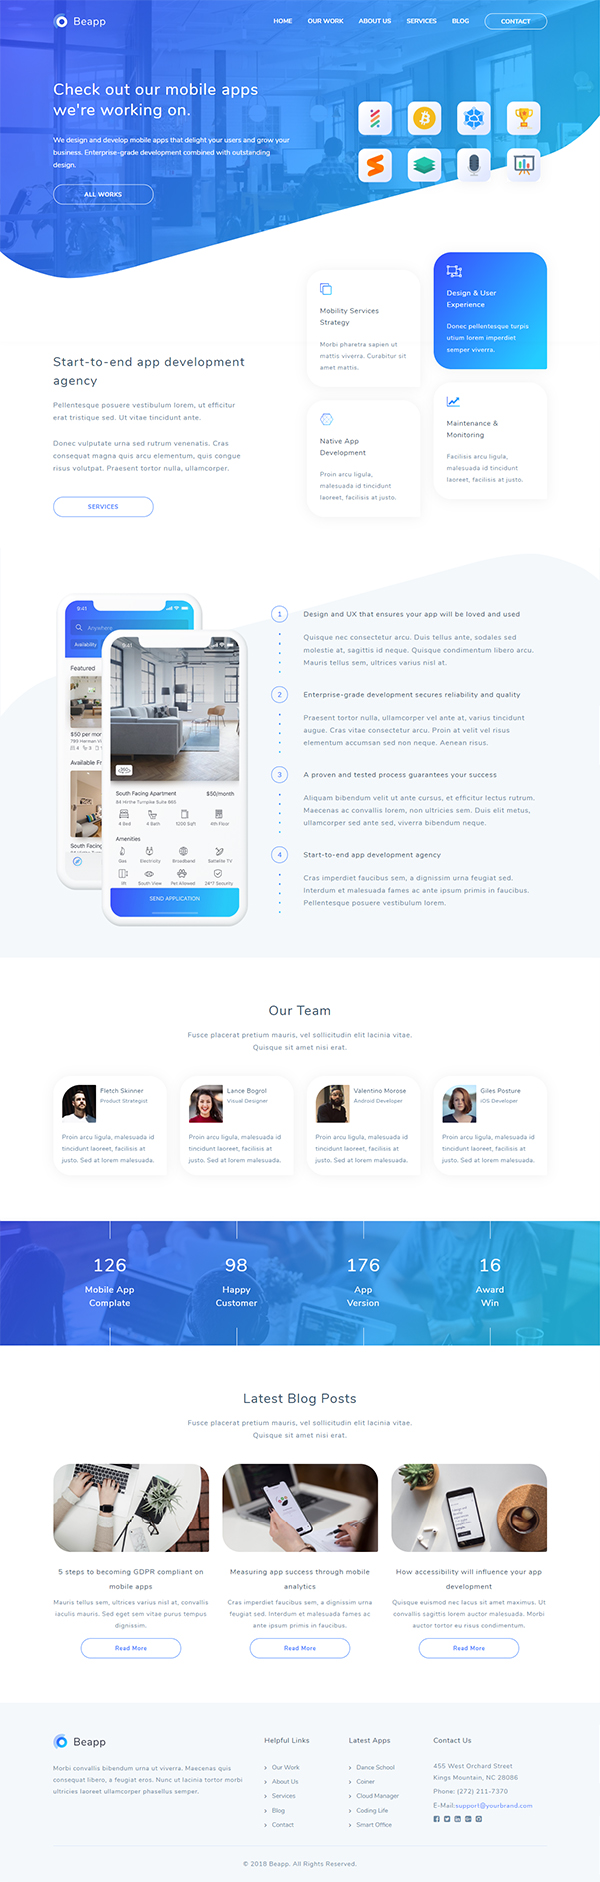 Beapp - Mobile App Development Agency HTML5 Template